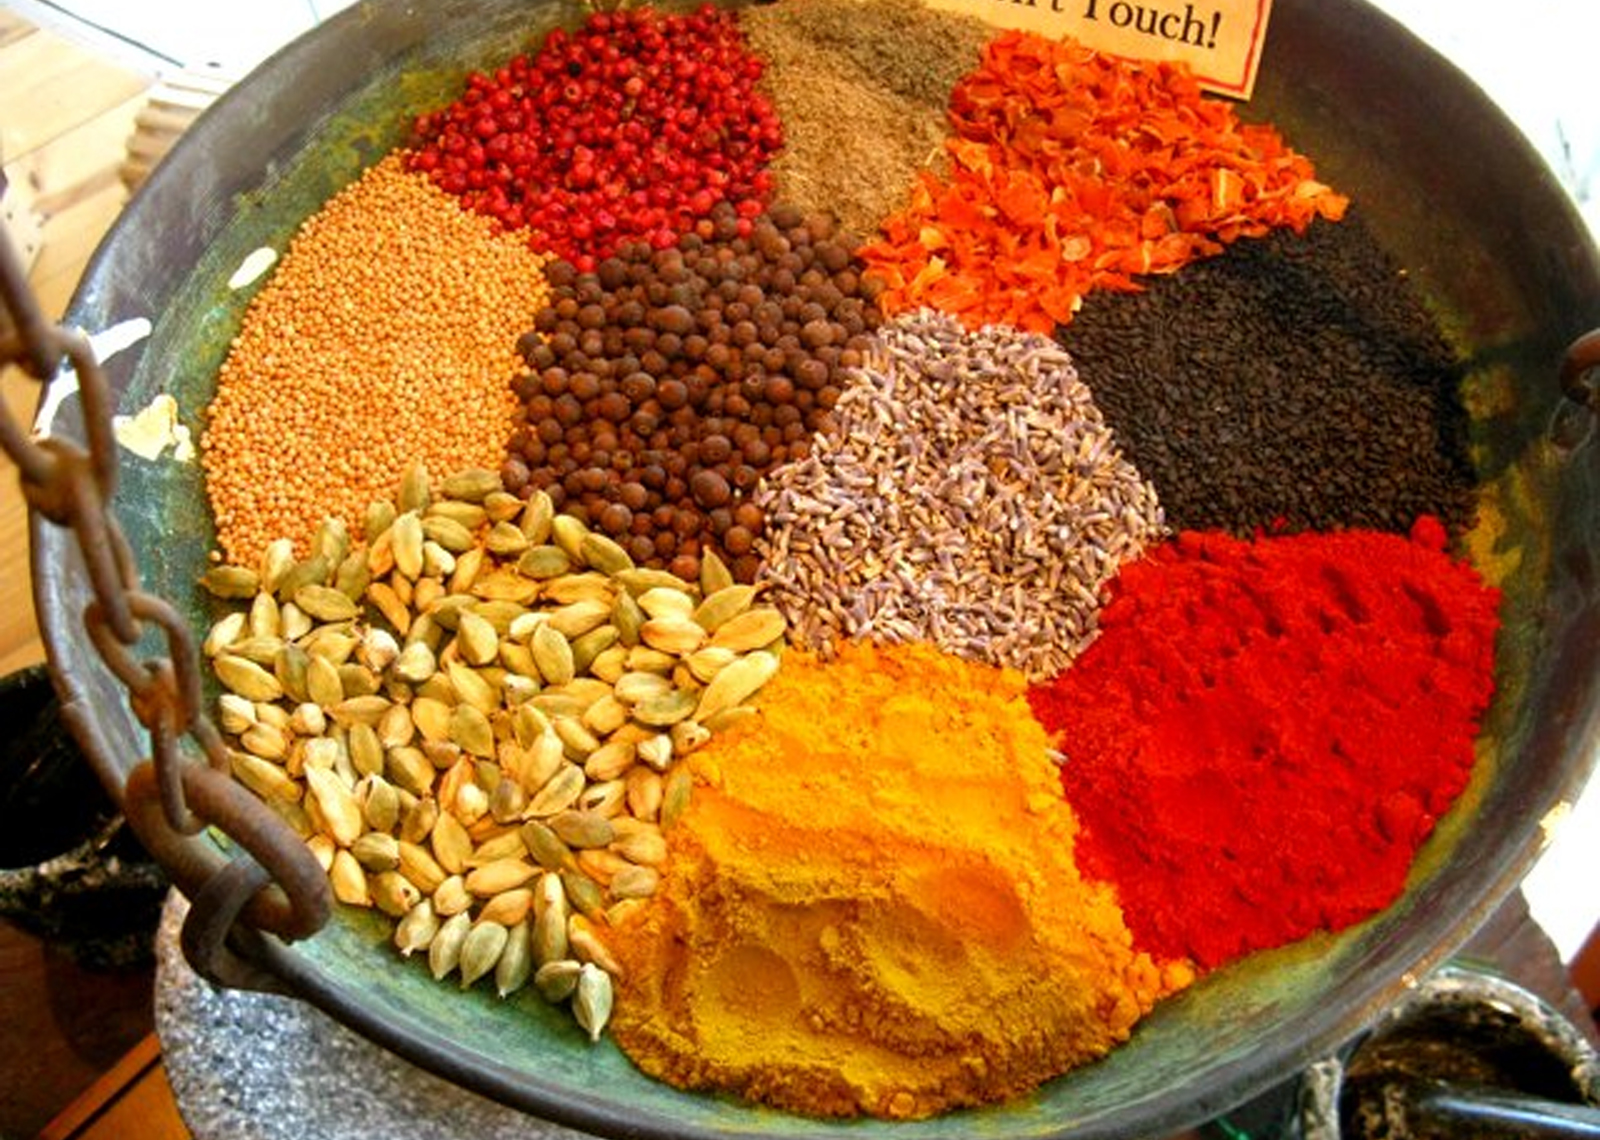 How to Make Your Own Seasoning Mixes